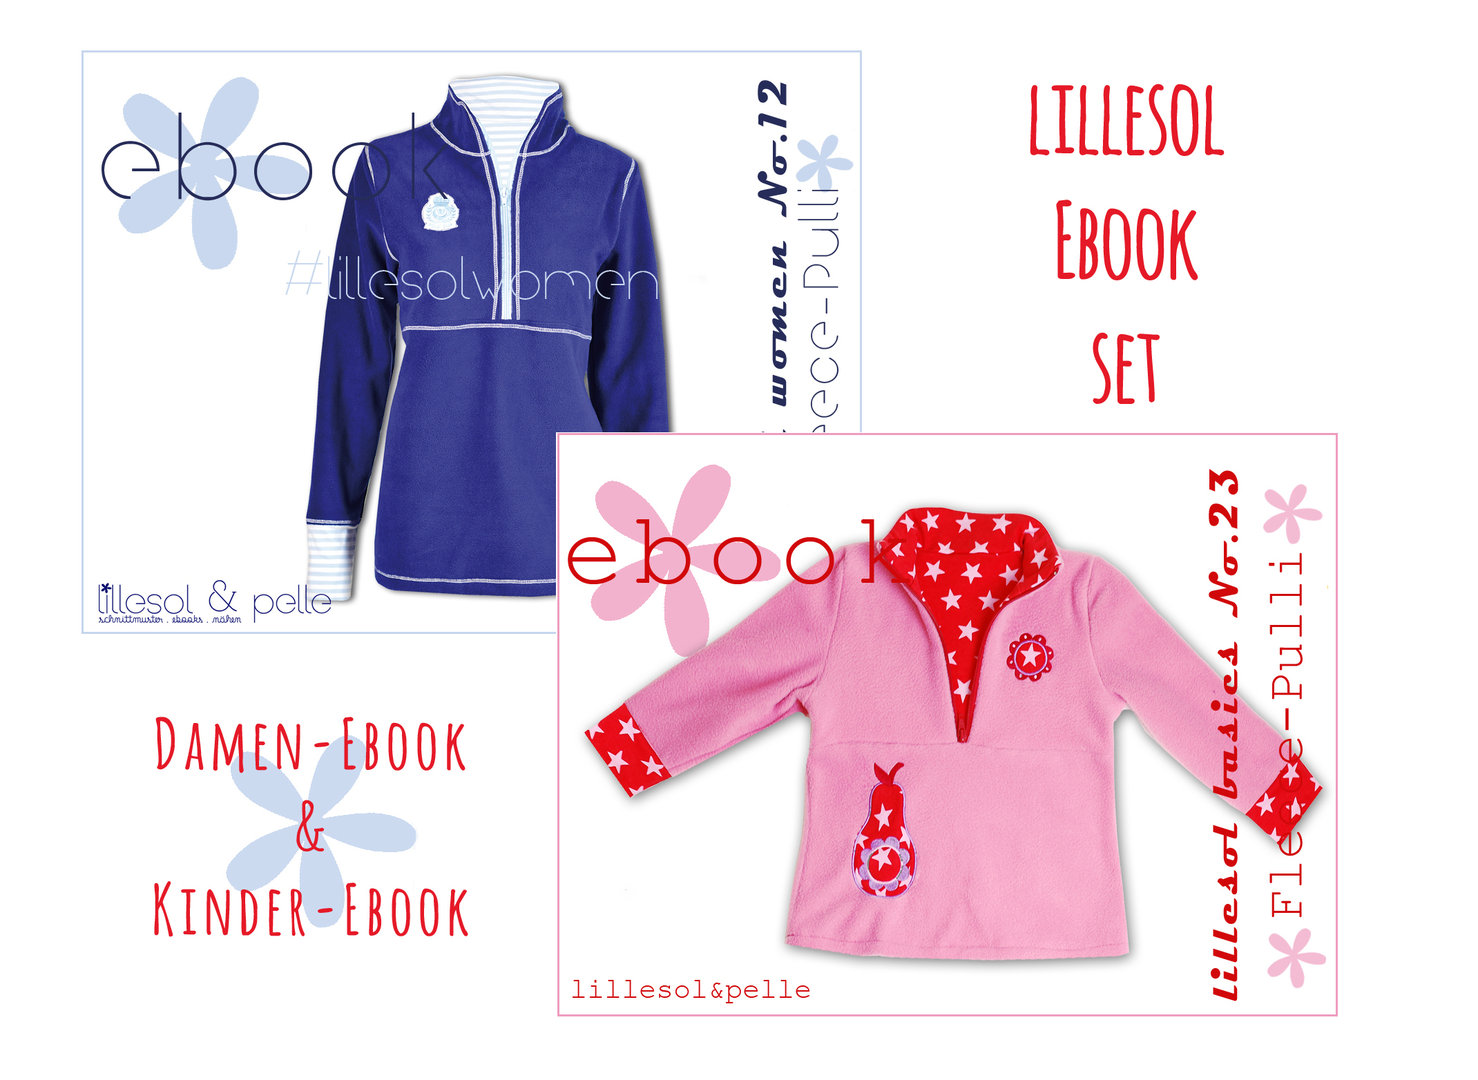 lillesol ebook set basic No.23 und women No.12